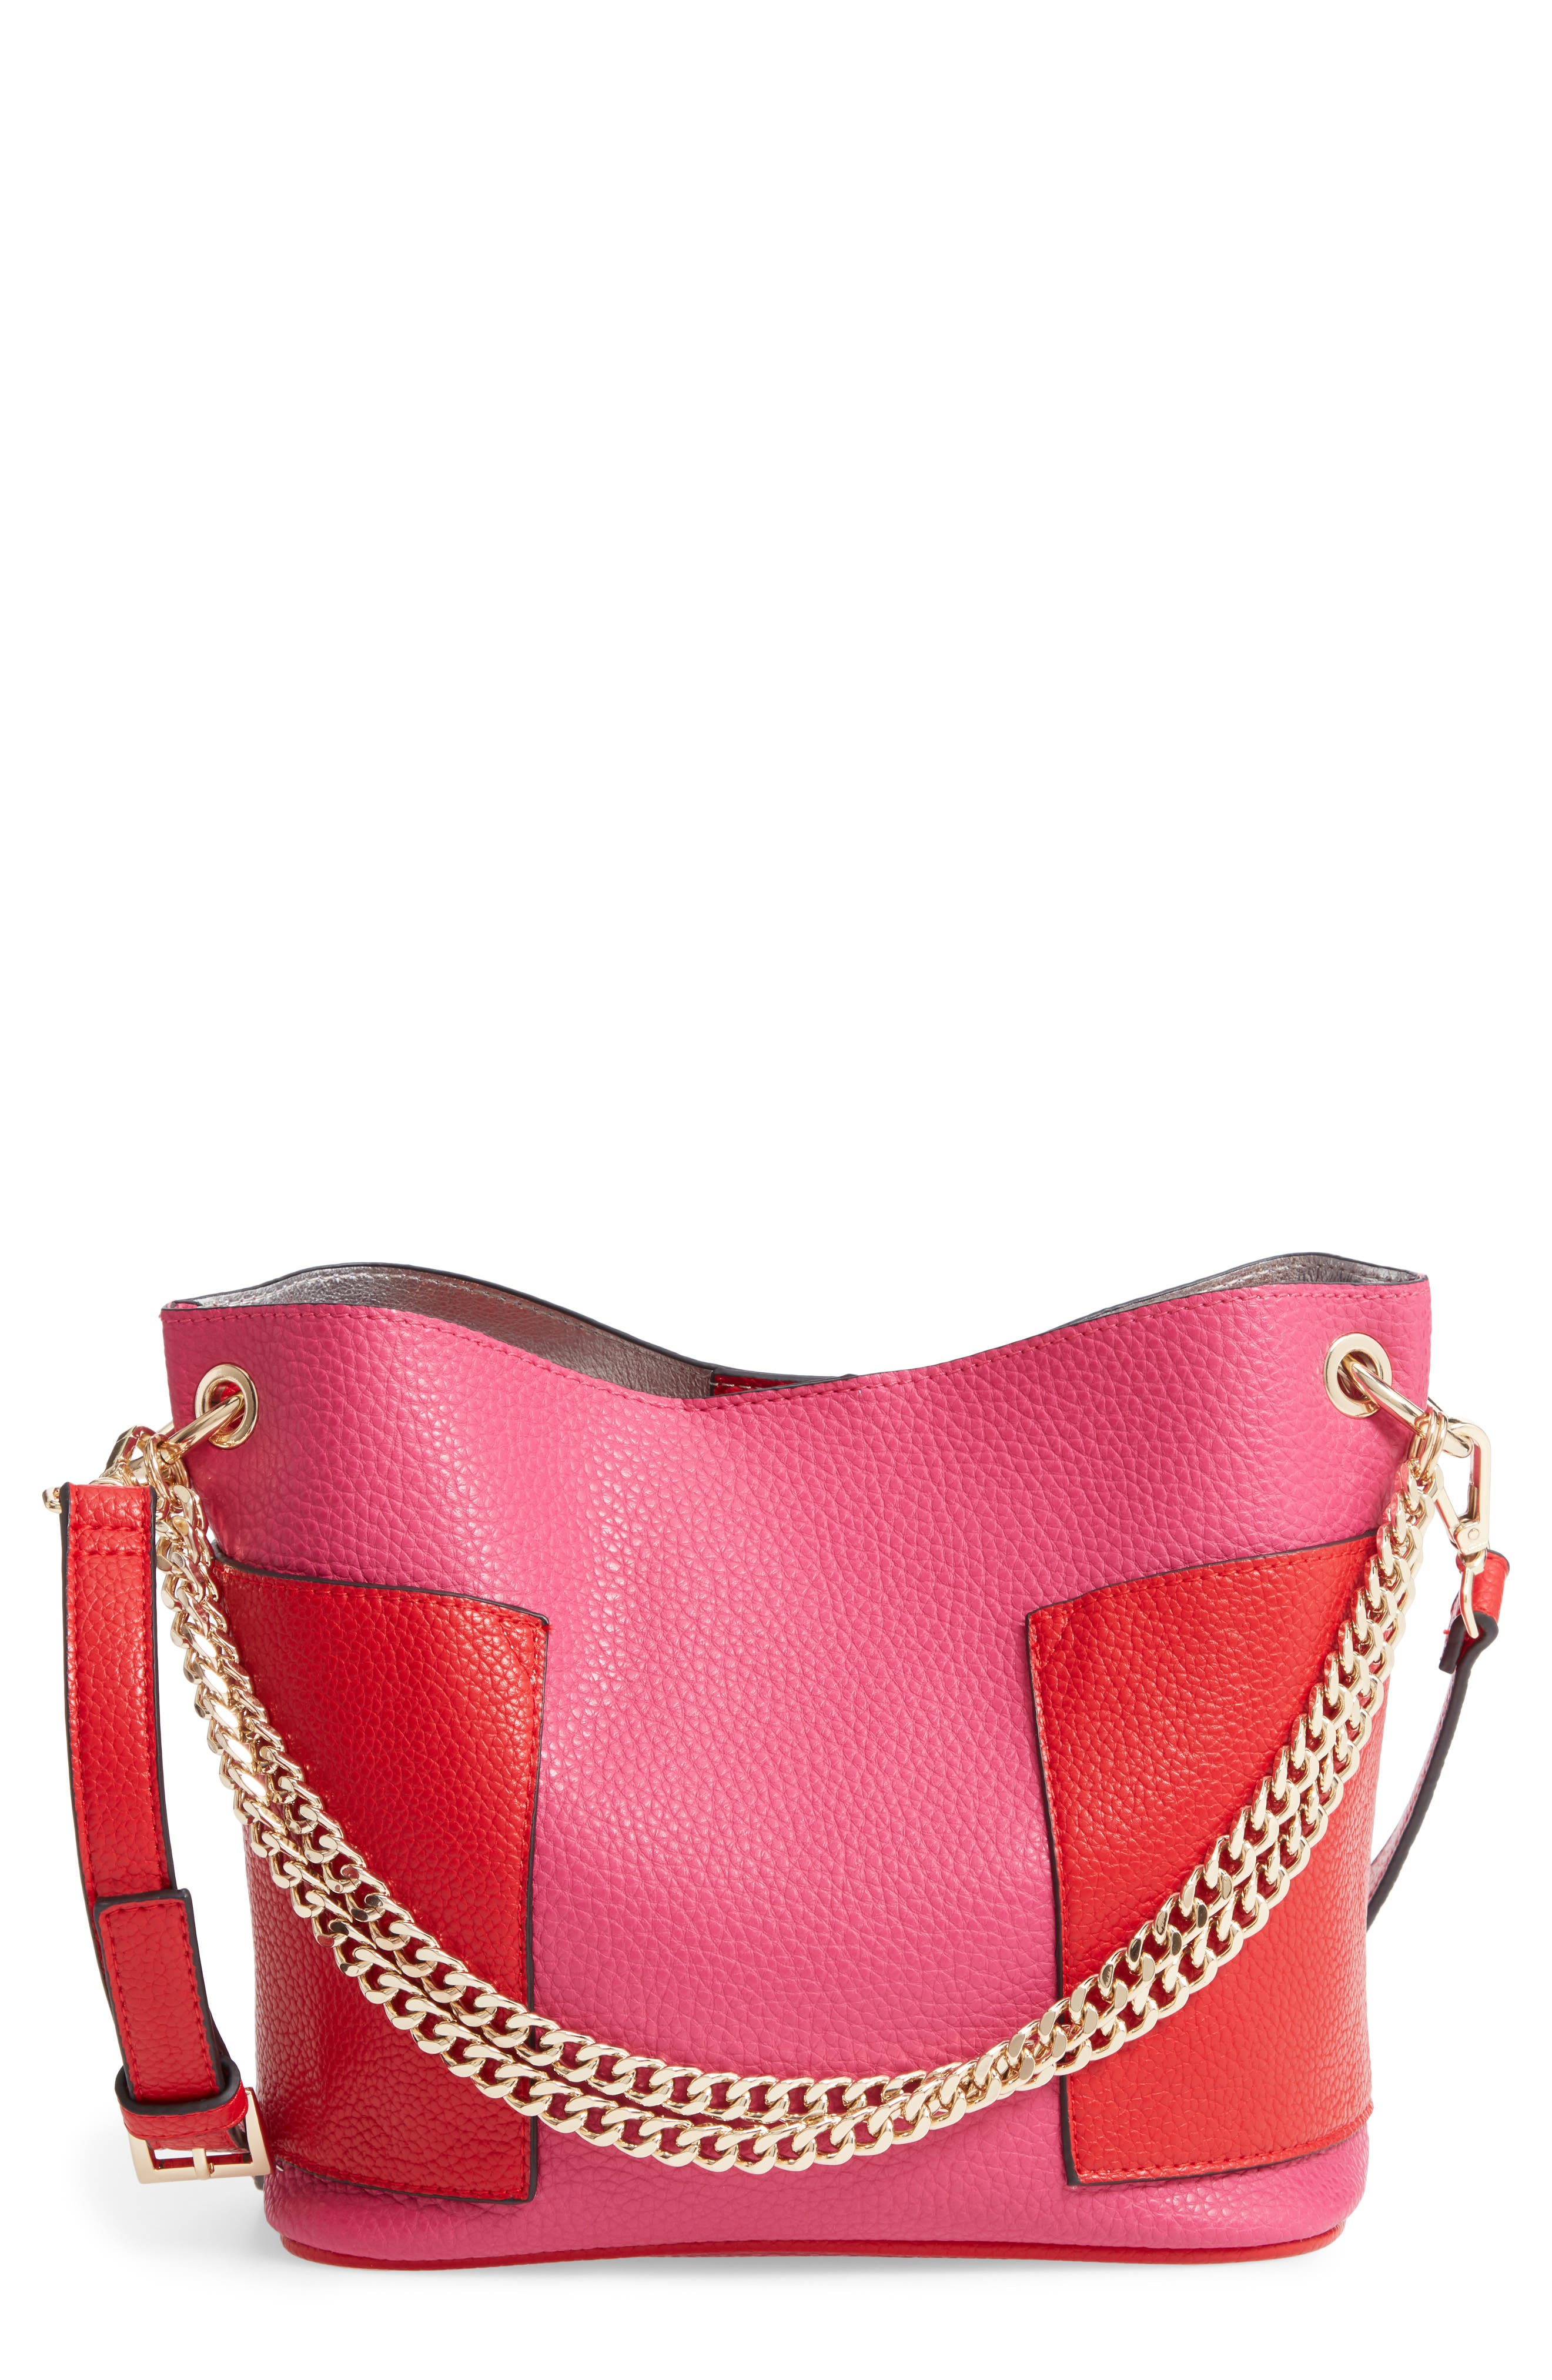 Bettie Faux Leather Bucket Bag,                             Main thumbnail 1, color,                             PINK/ MULTI